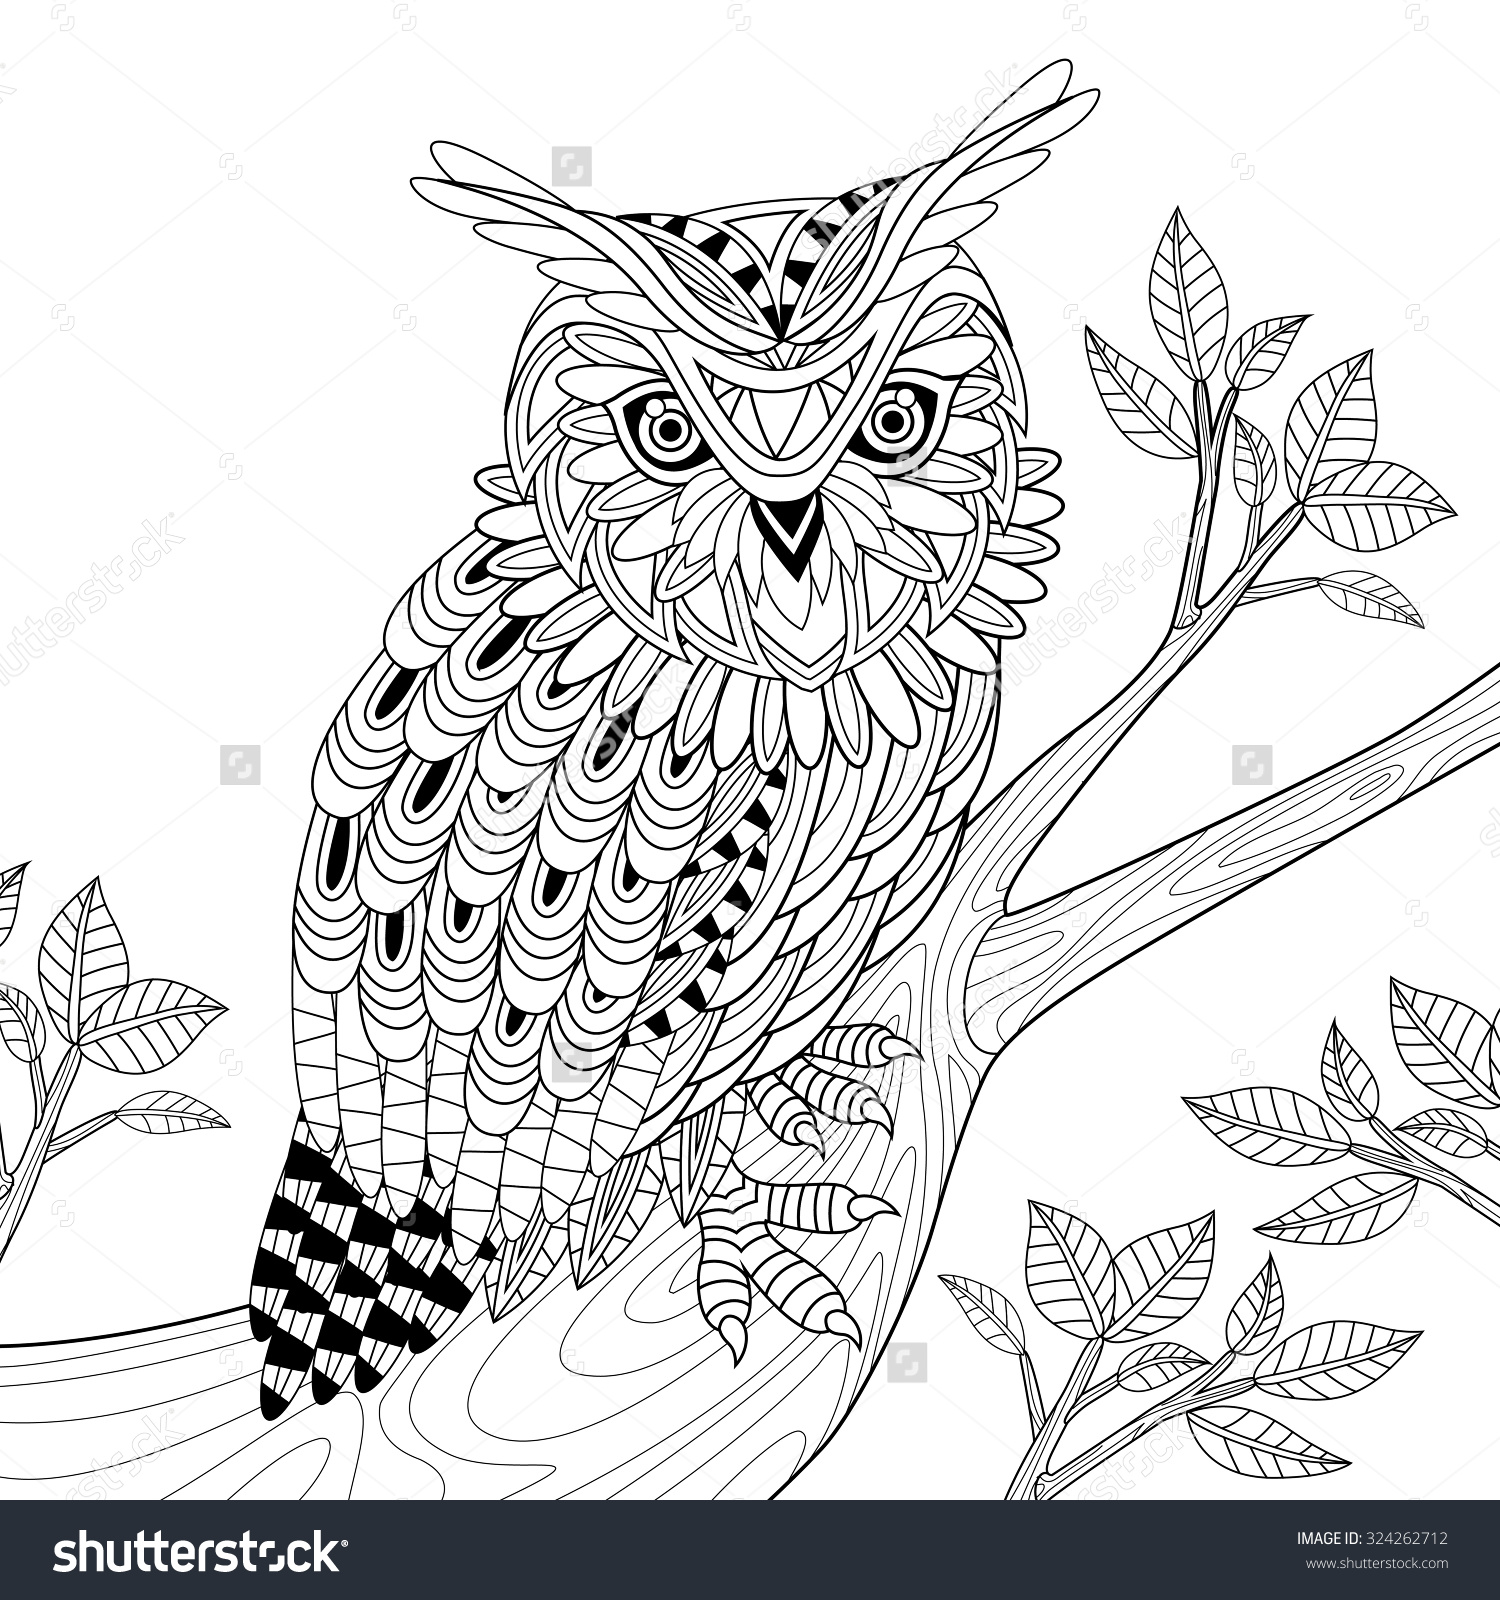 wise owl coloring page exquisite style stock illustration